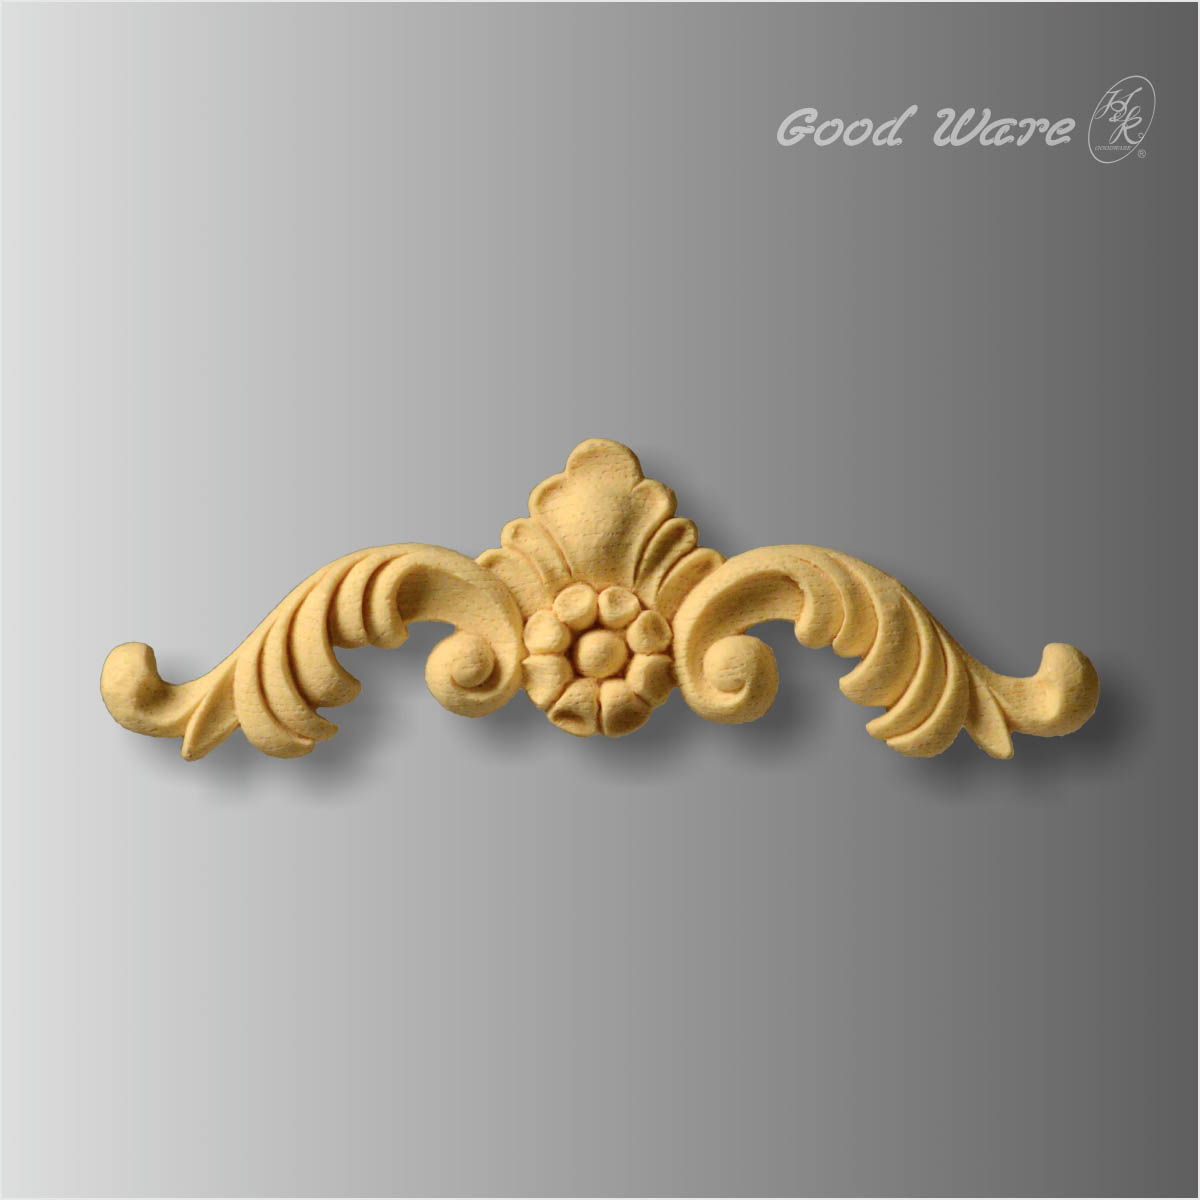 Decor architectural products for sale